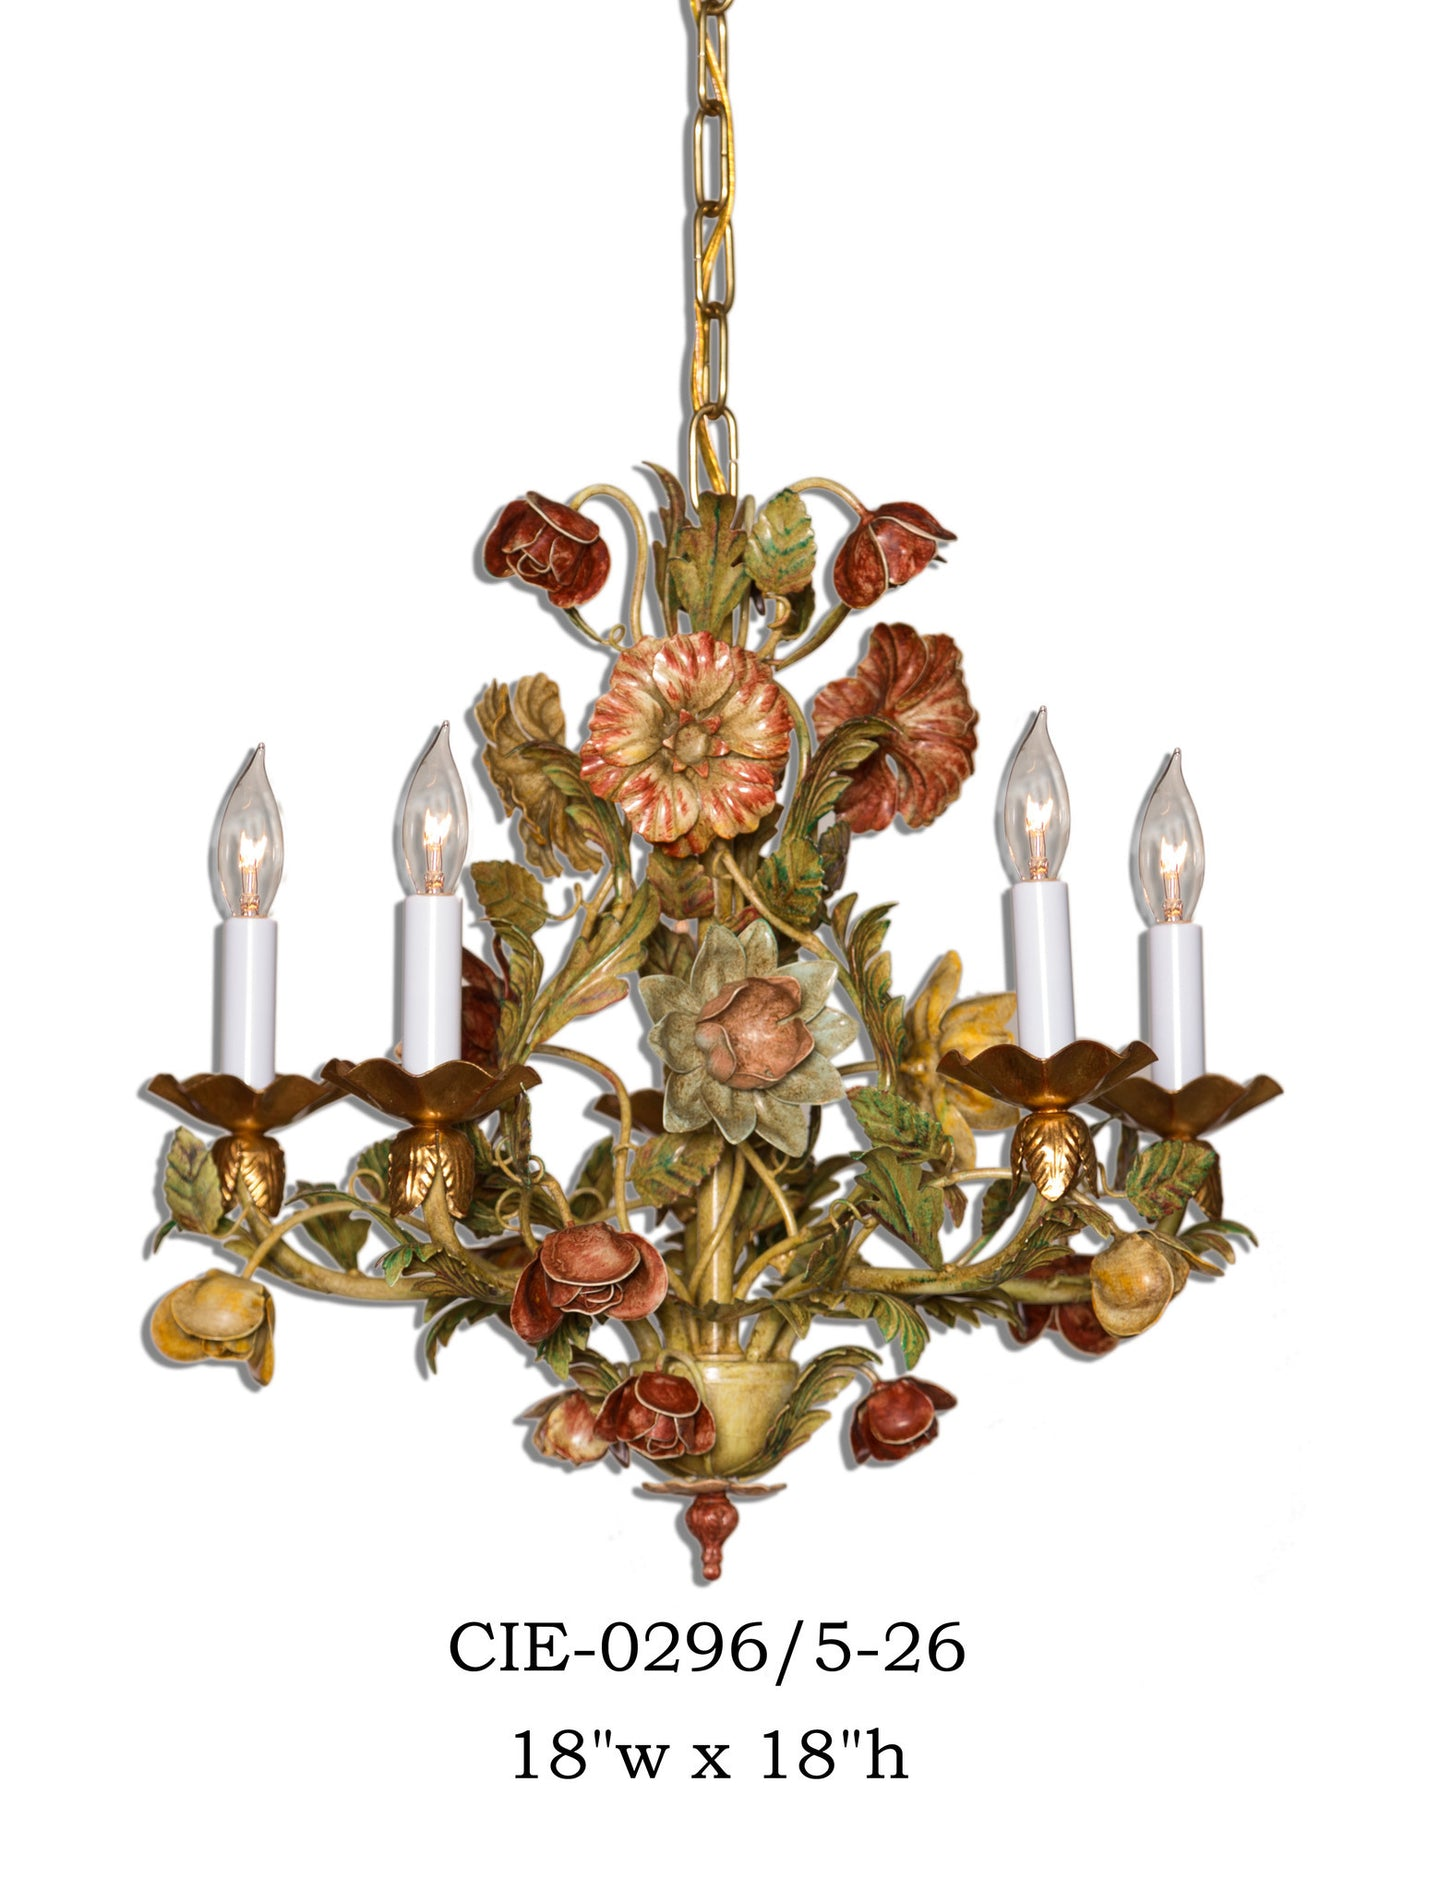 Other Metal Chandelier - CIE-0296/5-26Chandelier - Graham's Lighting Memphis, TN